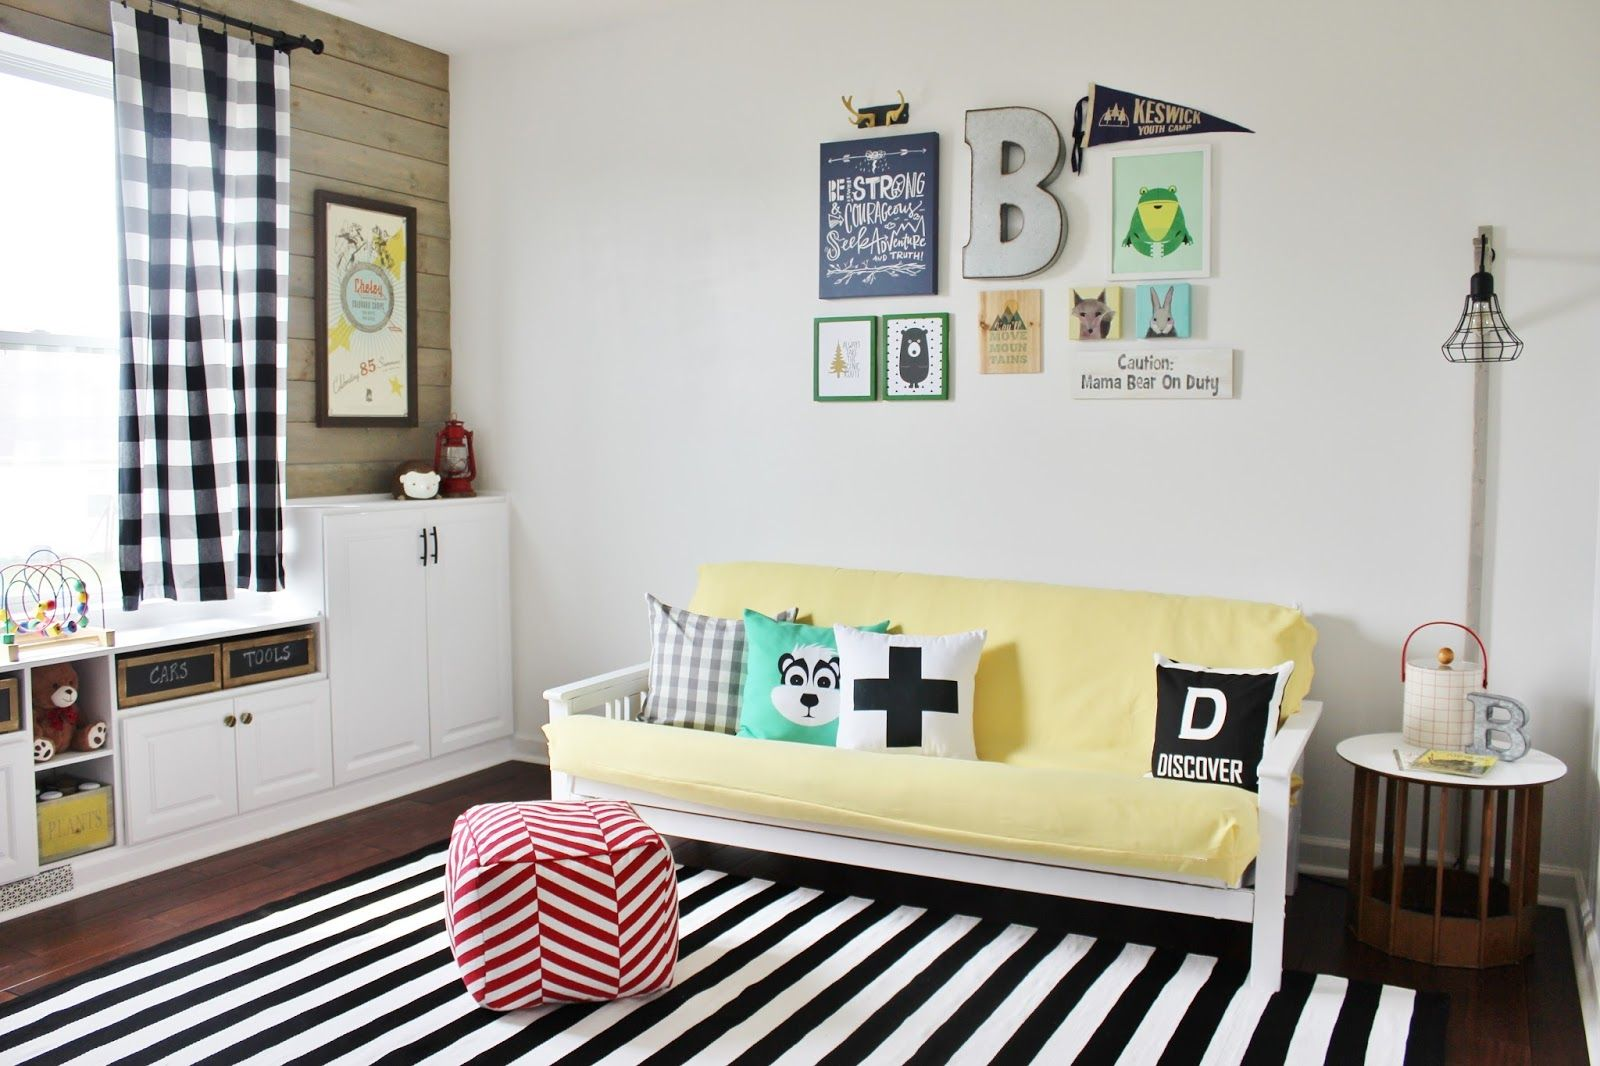 12 Best Kids Room Ideas - DIY Boys and Girls Bedroom Decorating ...